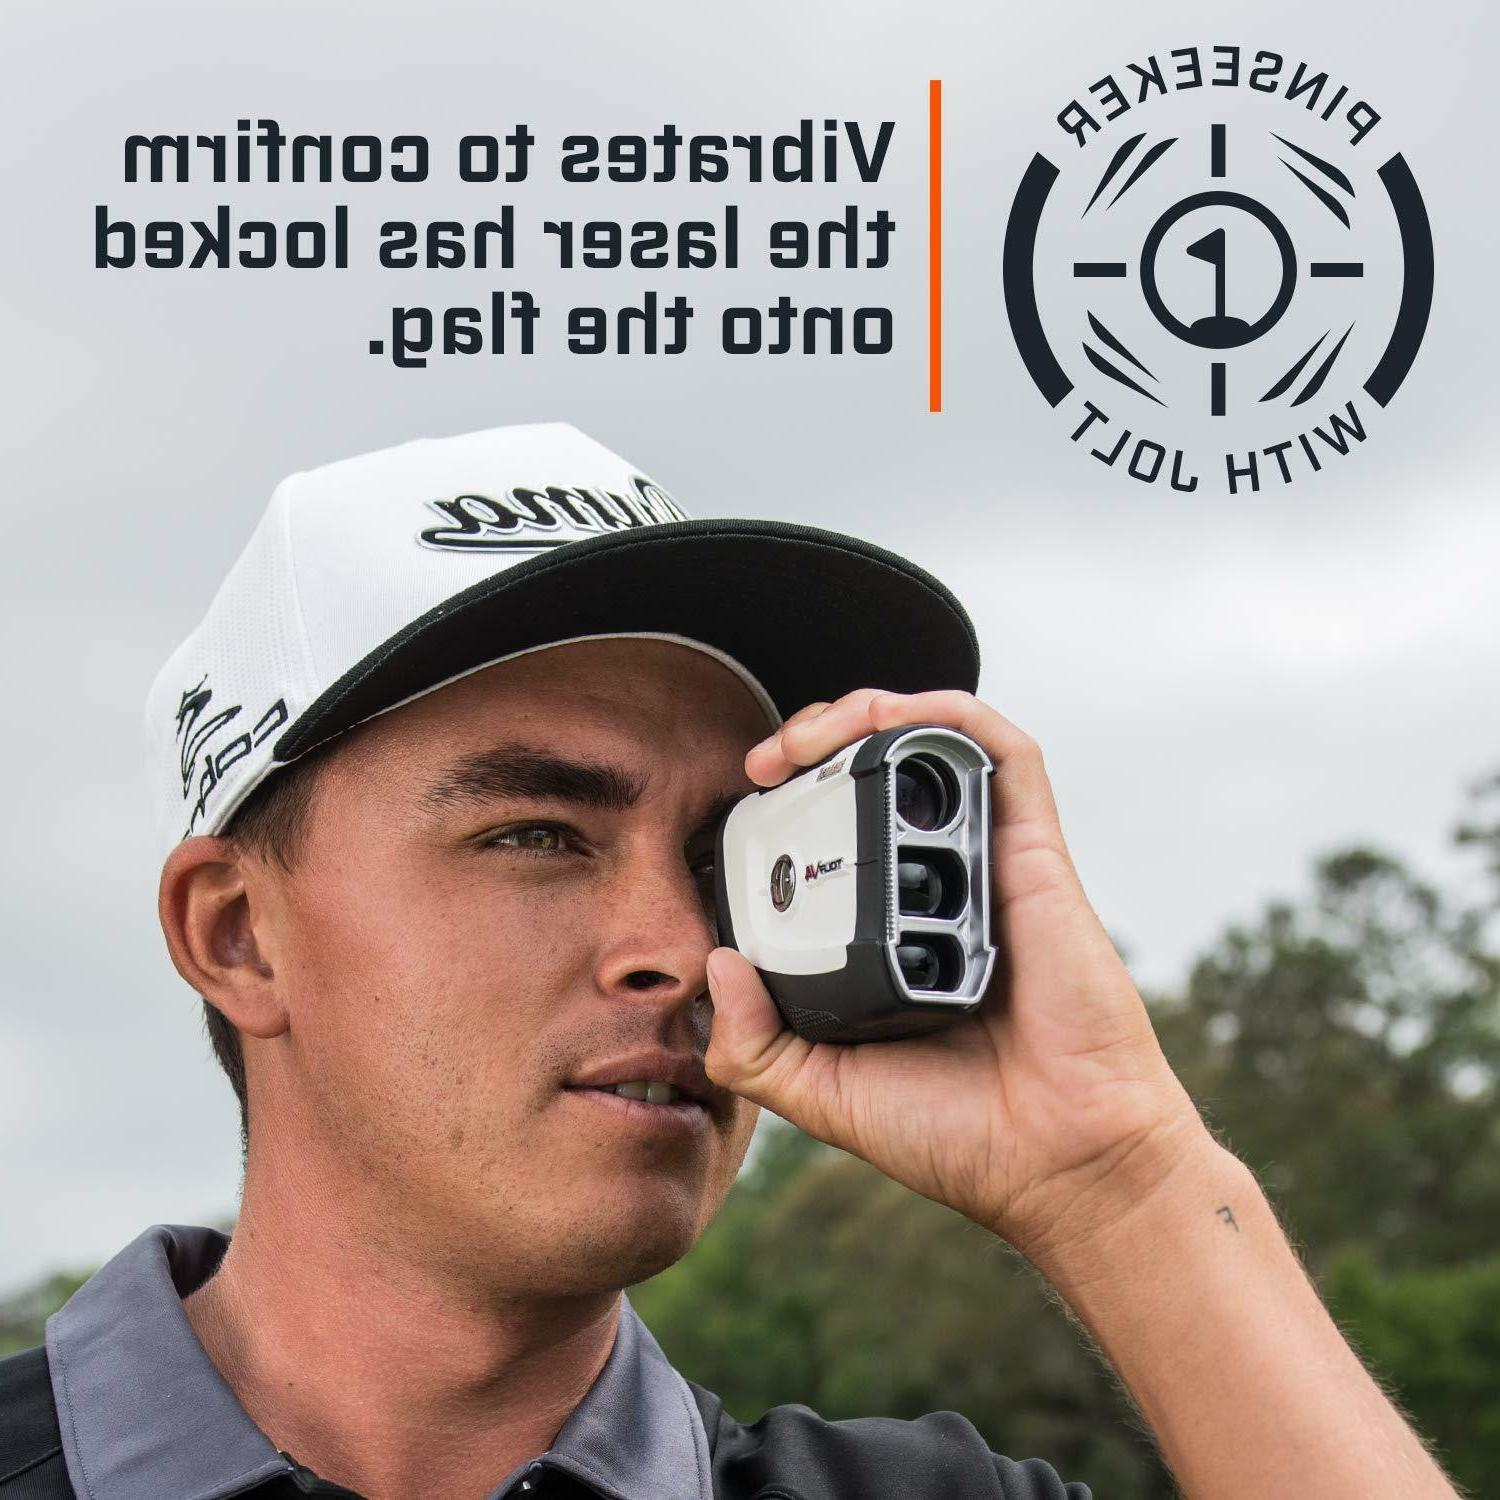 Bushnell Golf Technology |